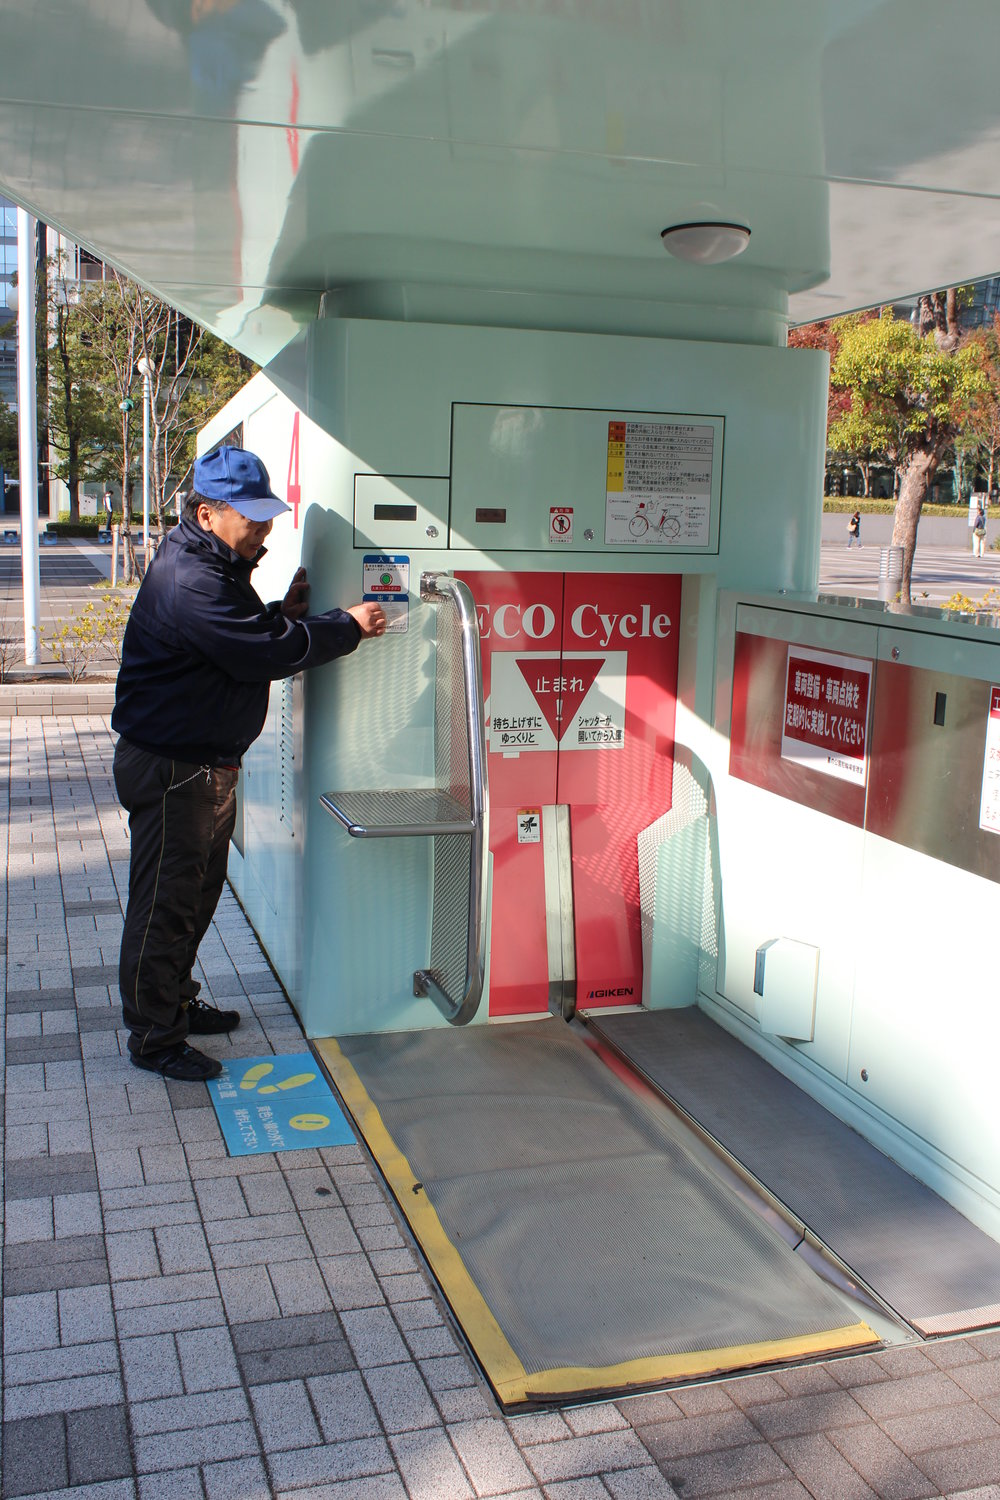 Amazing Tokyo bike parking pulls bike into device and in seconds it's in a secure underground carousel.